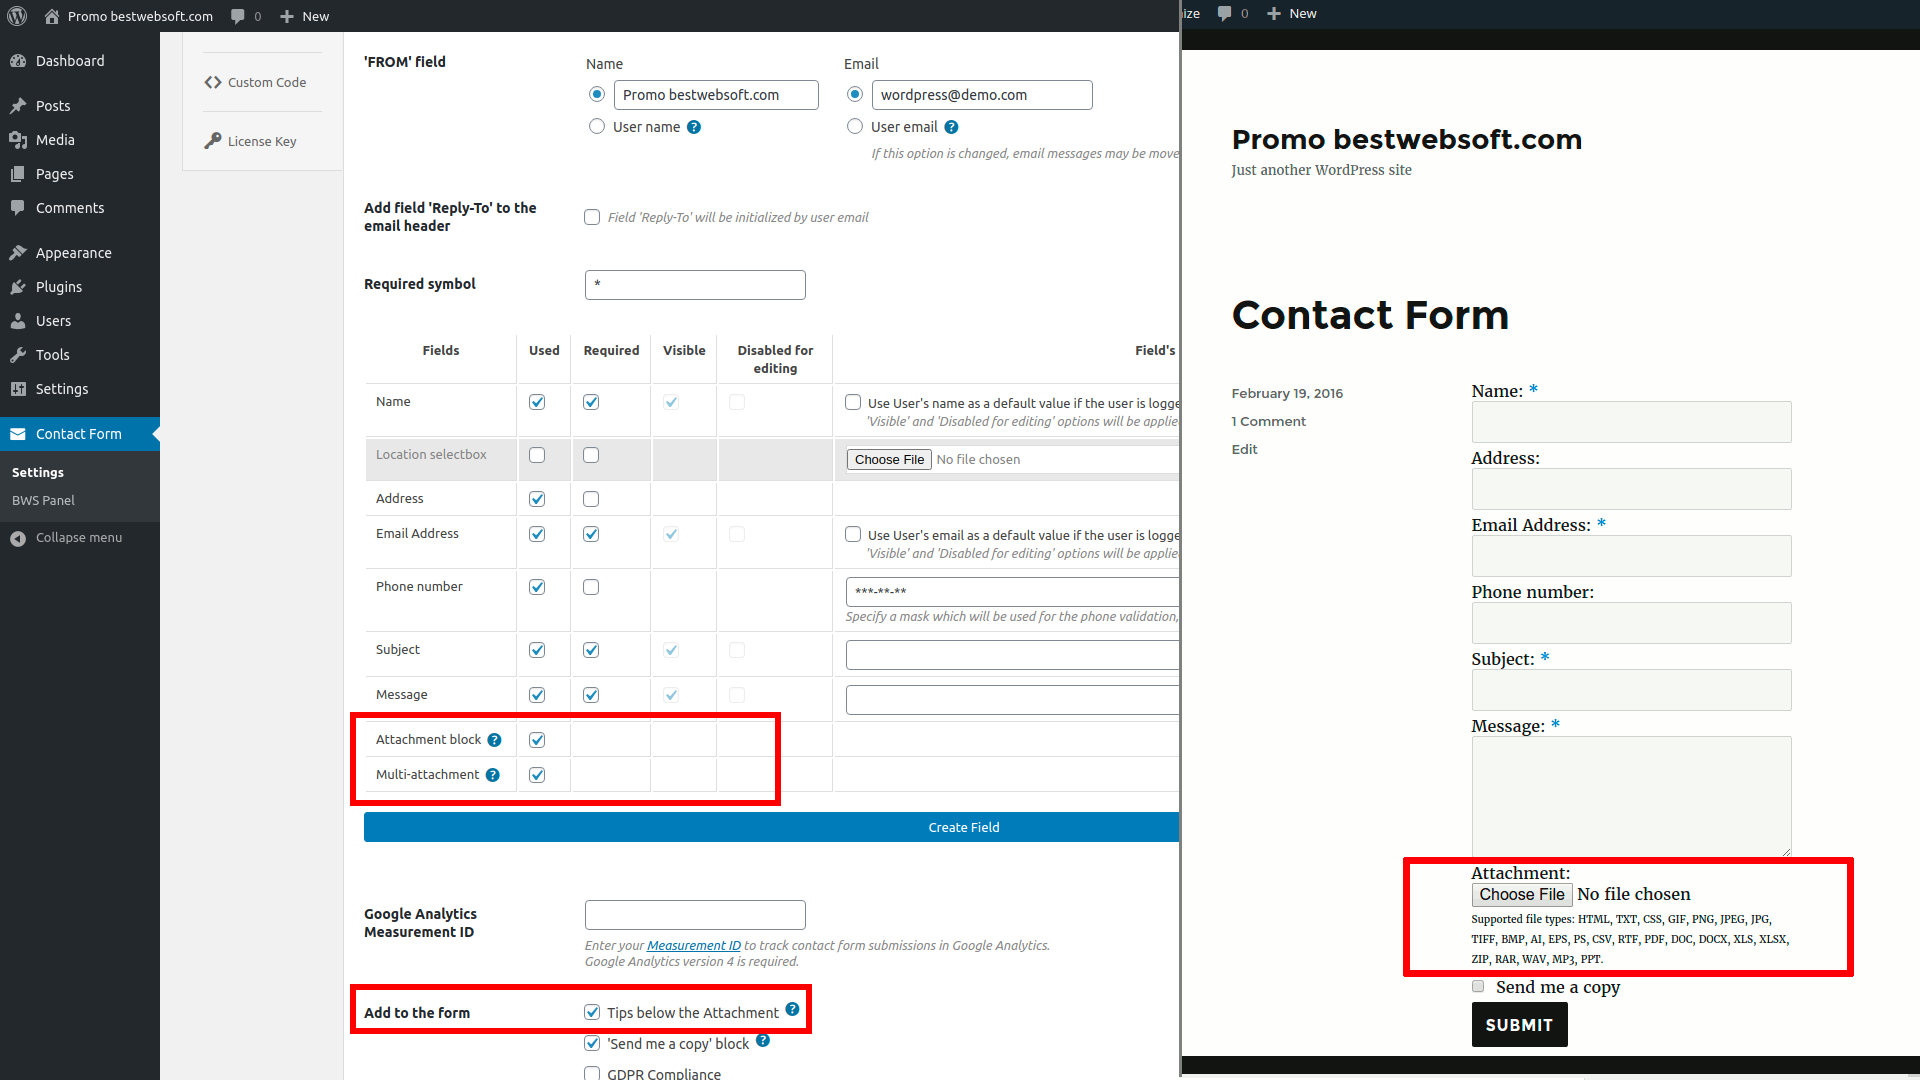 contact form screenshot 16